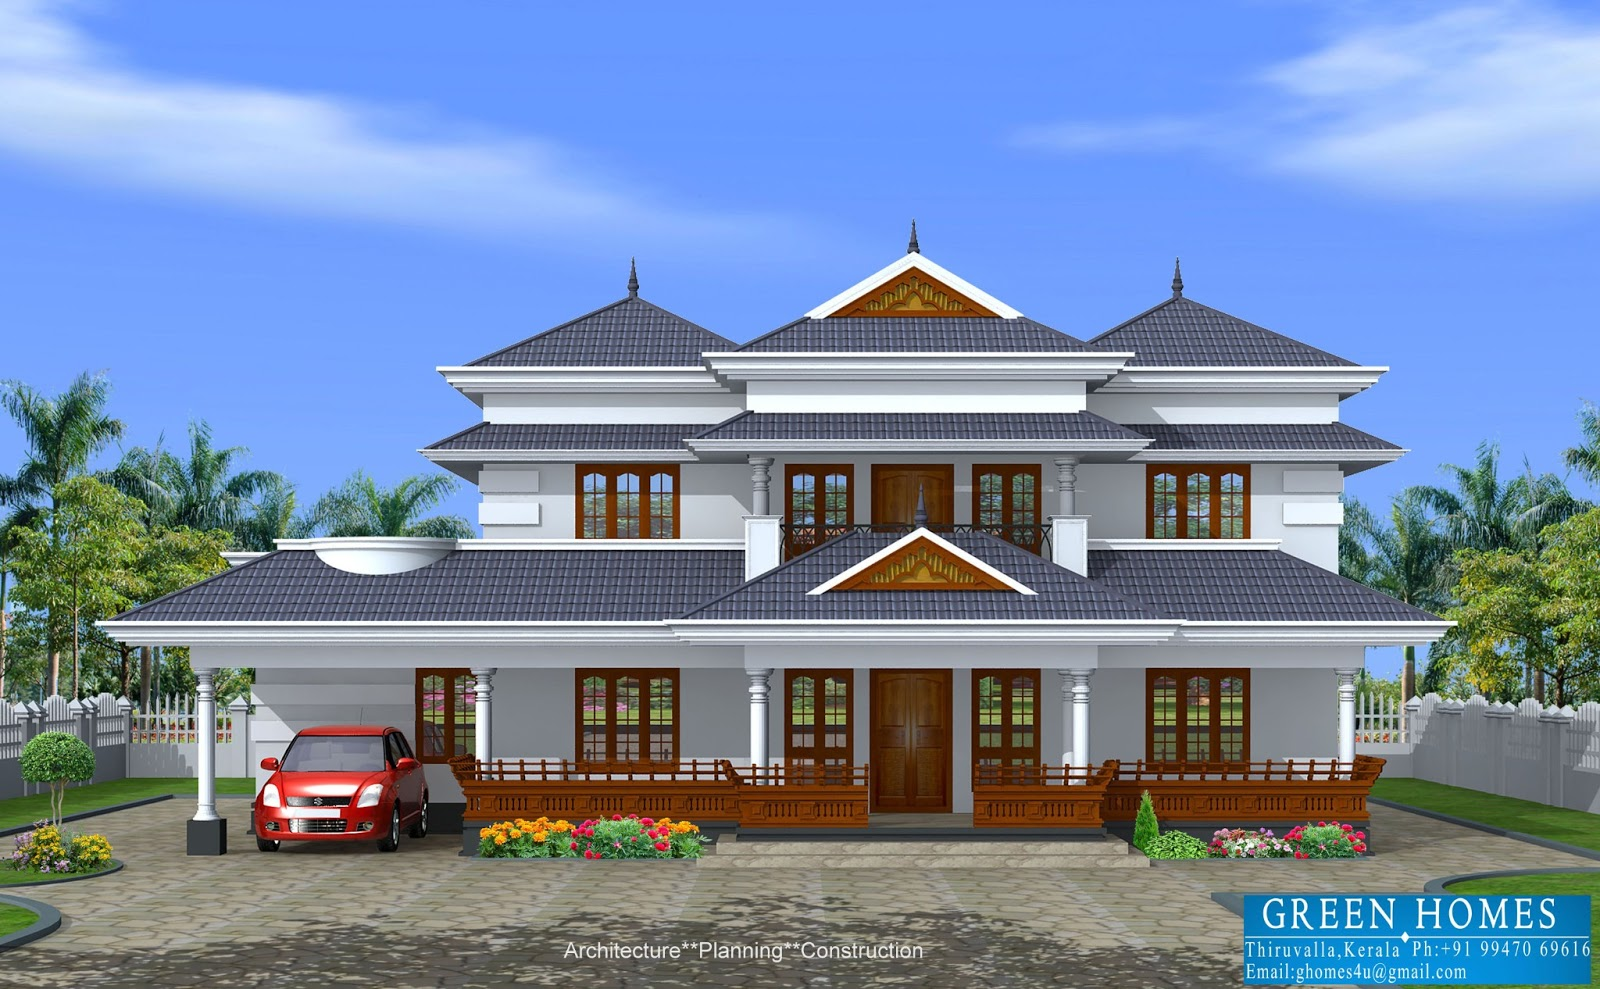 Green homes traditional style kerala home in 3450 sq ft for Green home builders